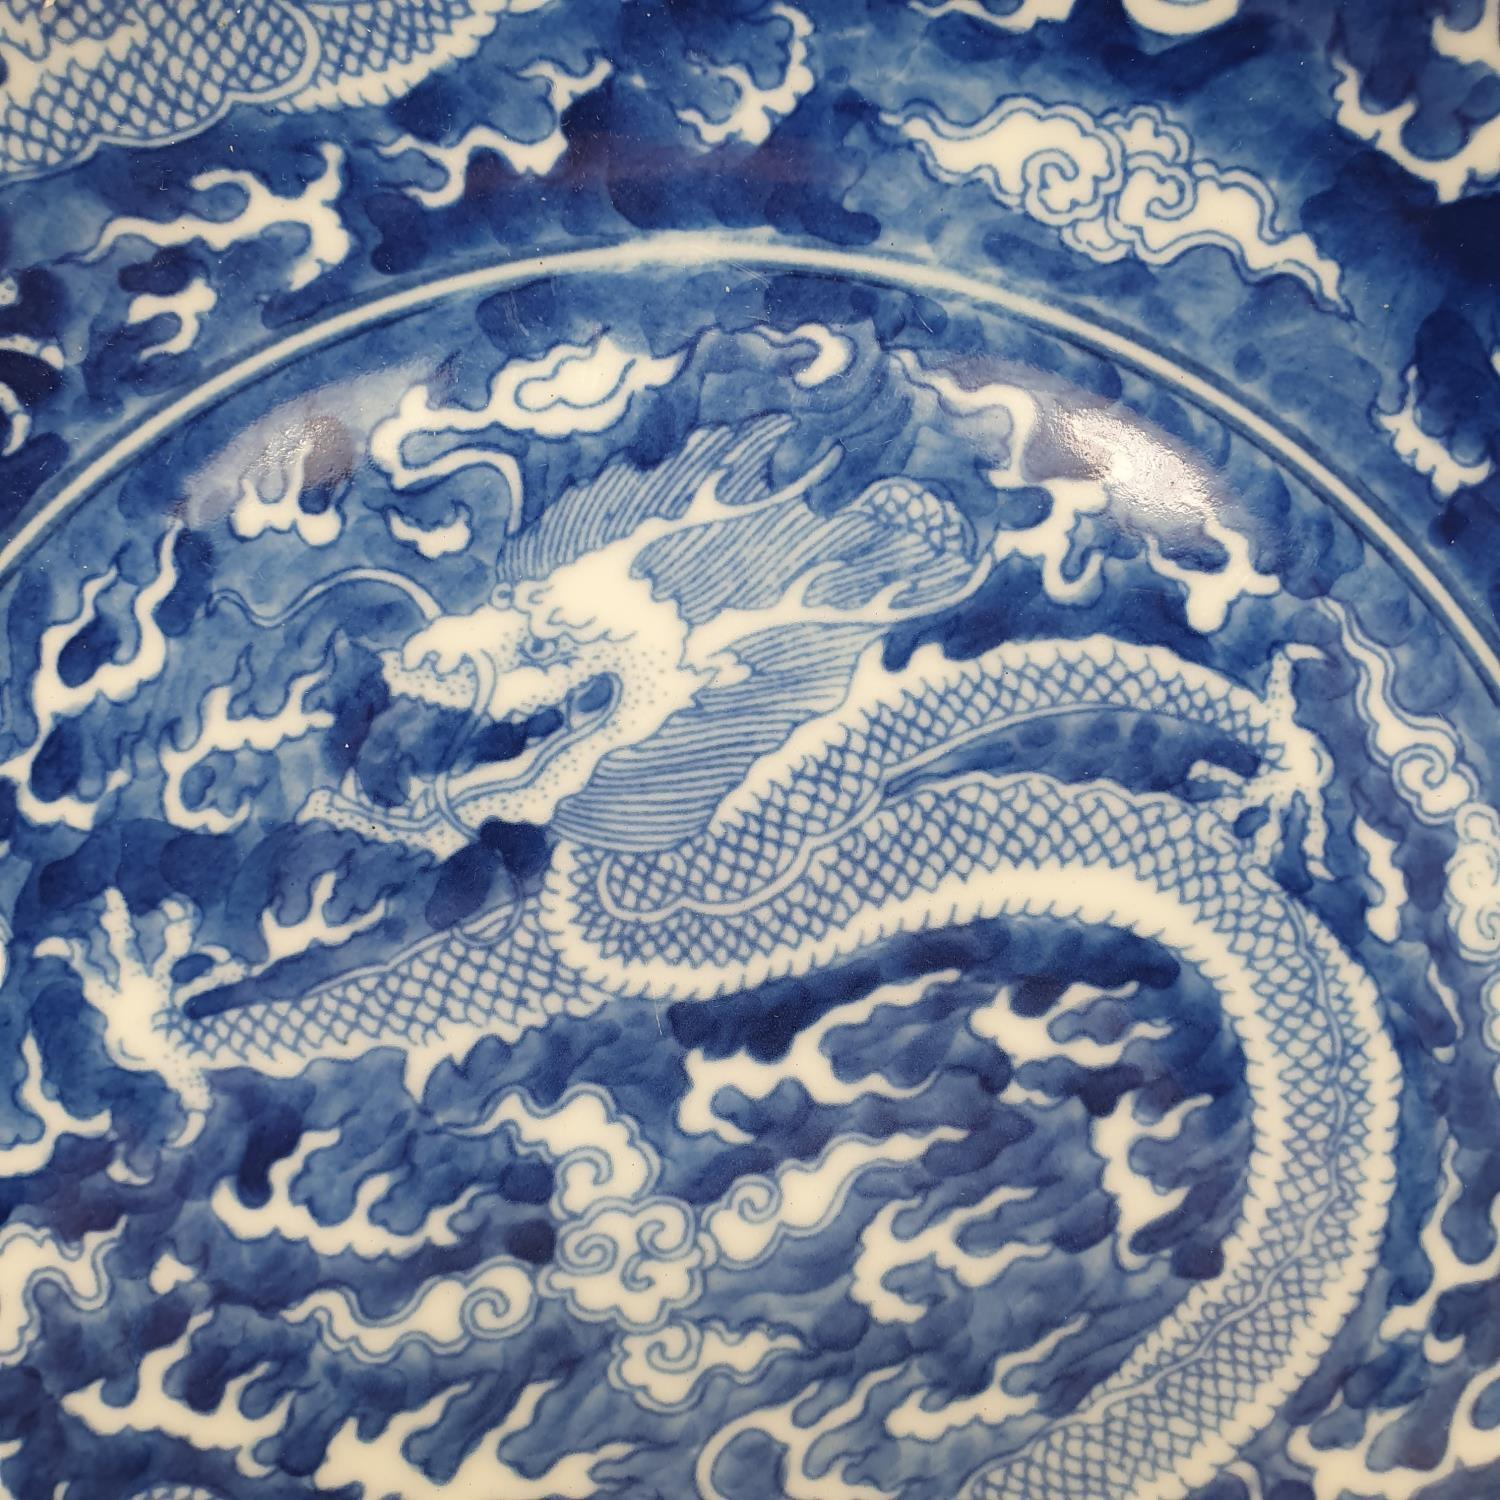 A Chinese blue and white plate, decorated with dragon chasing a flaming pearl, 25 cm diameter - Image 3 of 6